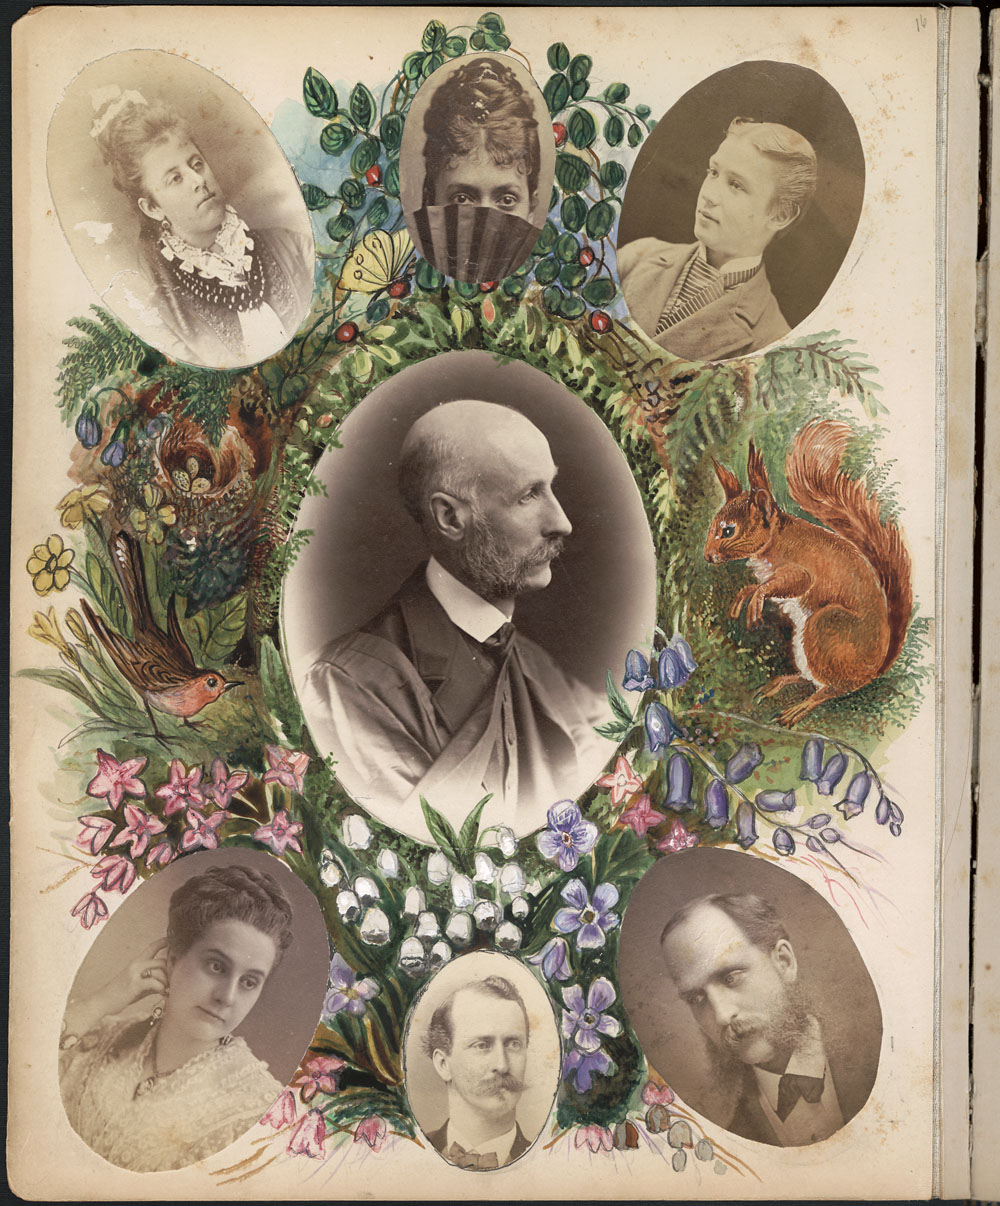 An album page with a large photograph of a man in the centre, surrounded by six smaller photographs of women and men. There are also coloured drawings of flowers, birds and a squirrel.